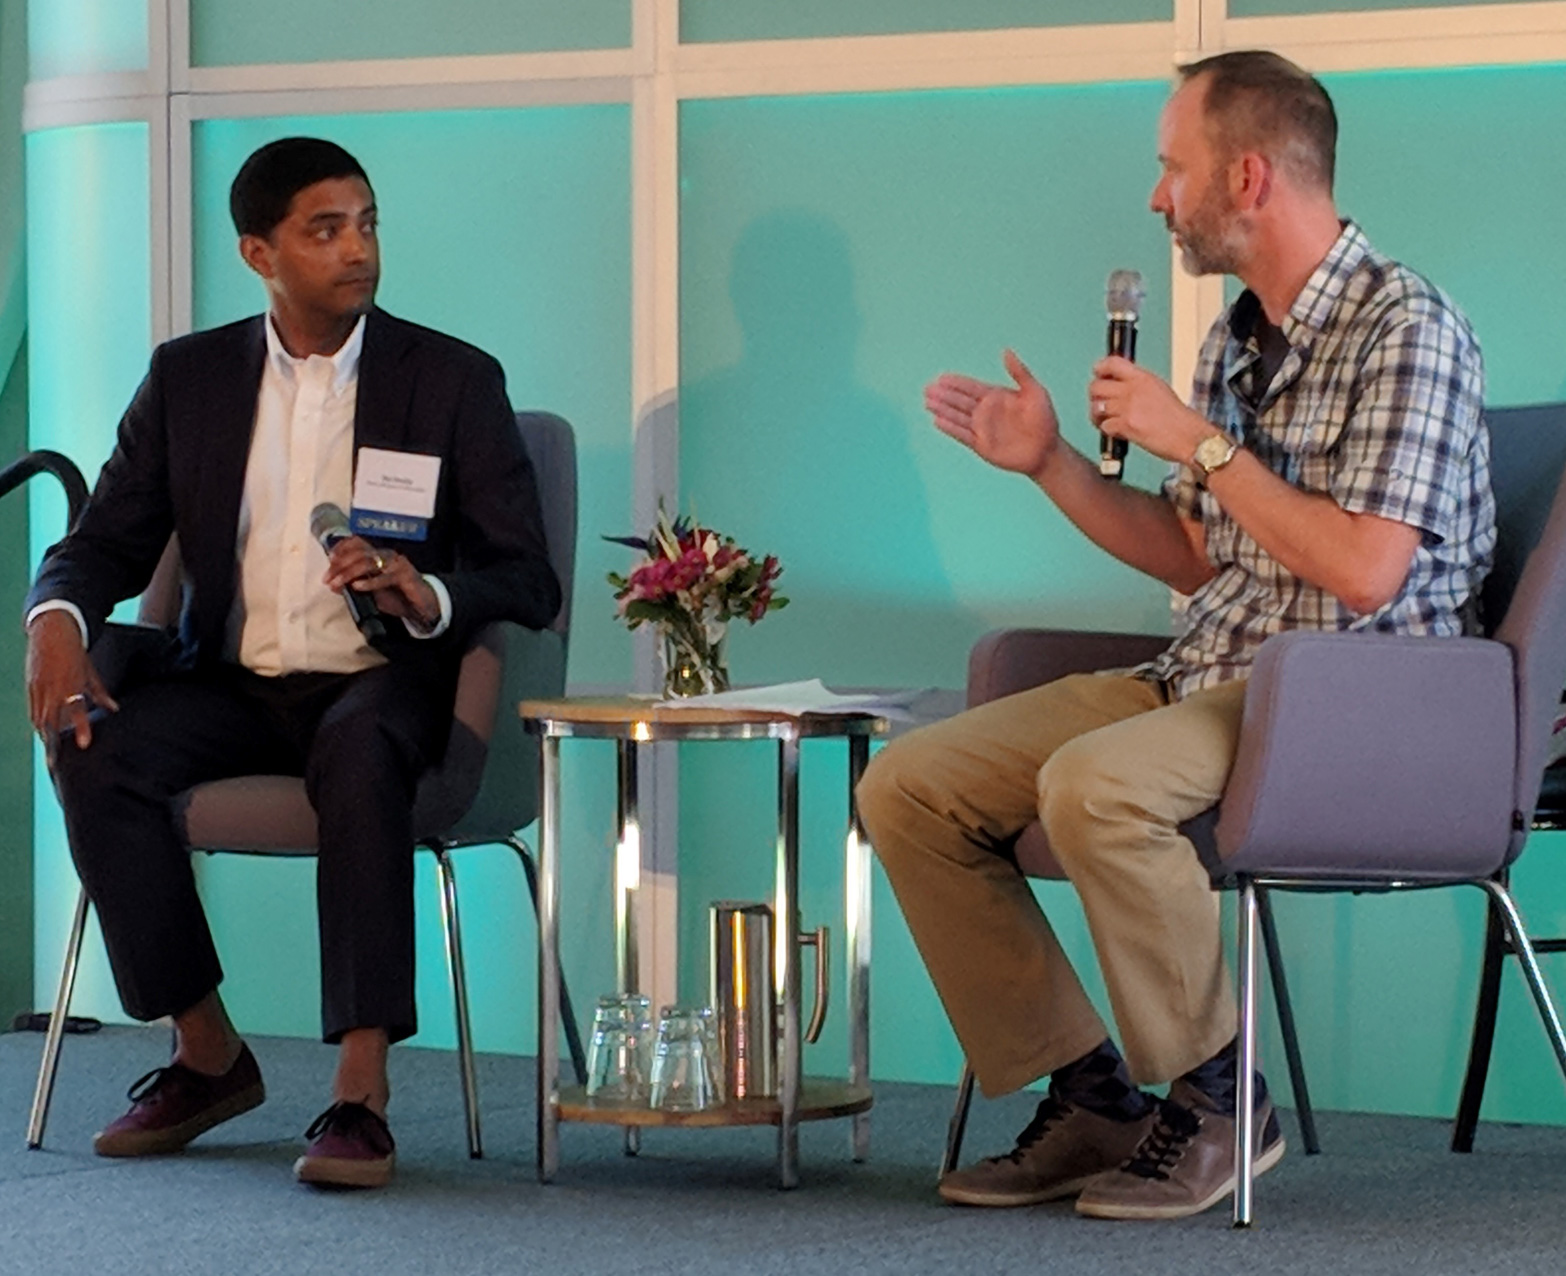 Raj Shukla of the River Alliance of Wisconsin and Matt Howard of the Alliance for Water Stewardship discuss the Clear Water Farms Program at the Water Leaders Summit in Milwaukee on June 27.